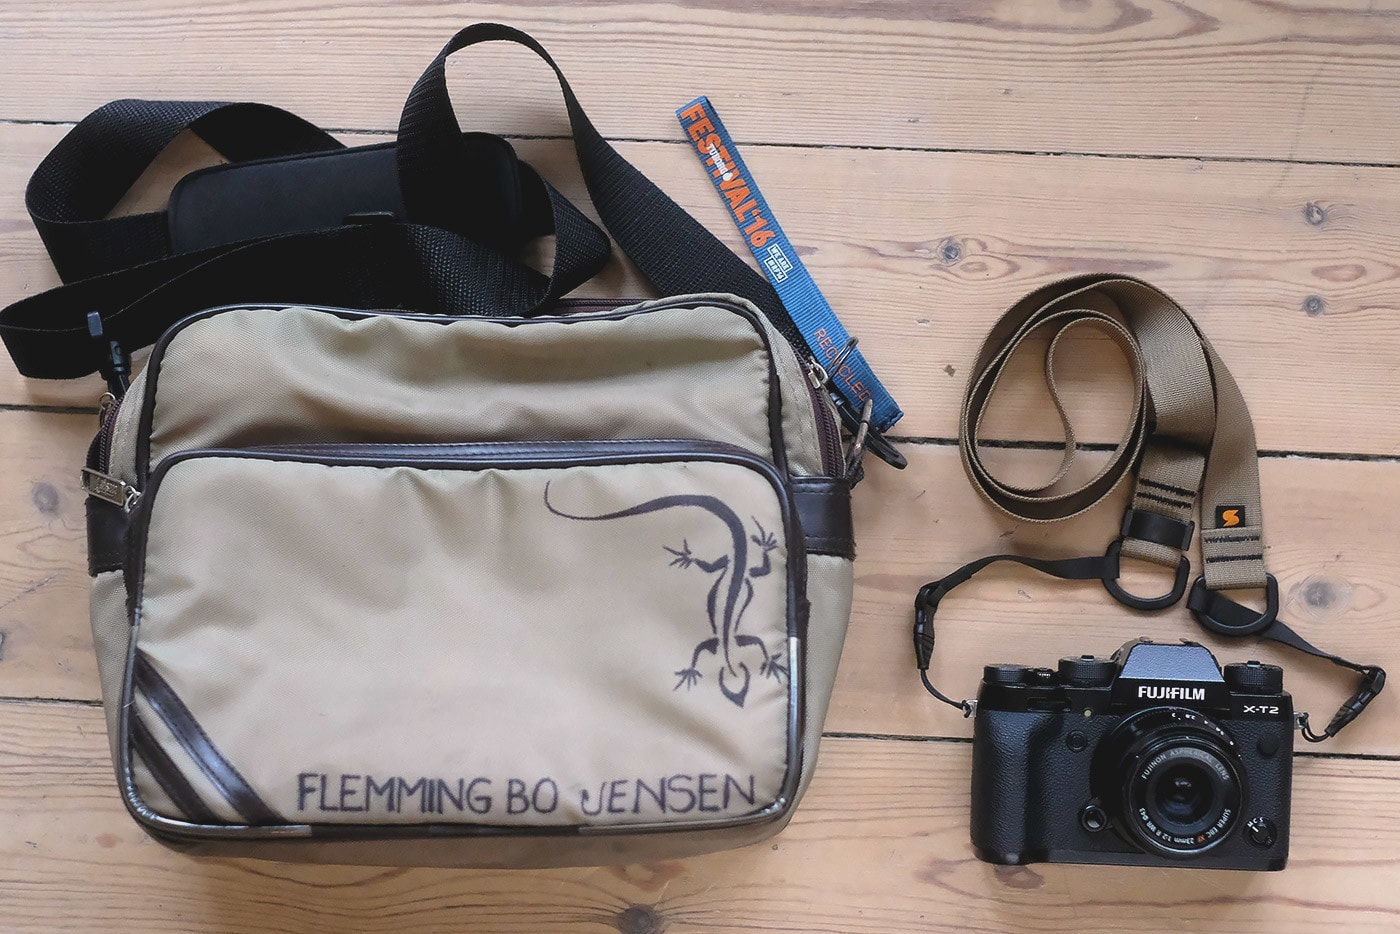 Flemming Bo Jensen's Bag a Fuji X-T2 se Simplr Mirrorless Camera Strap